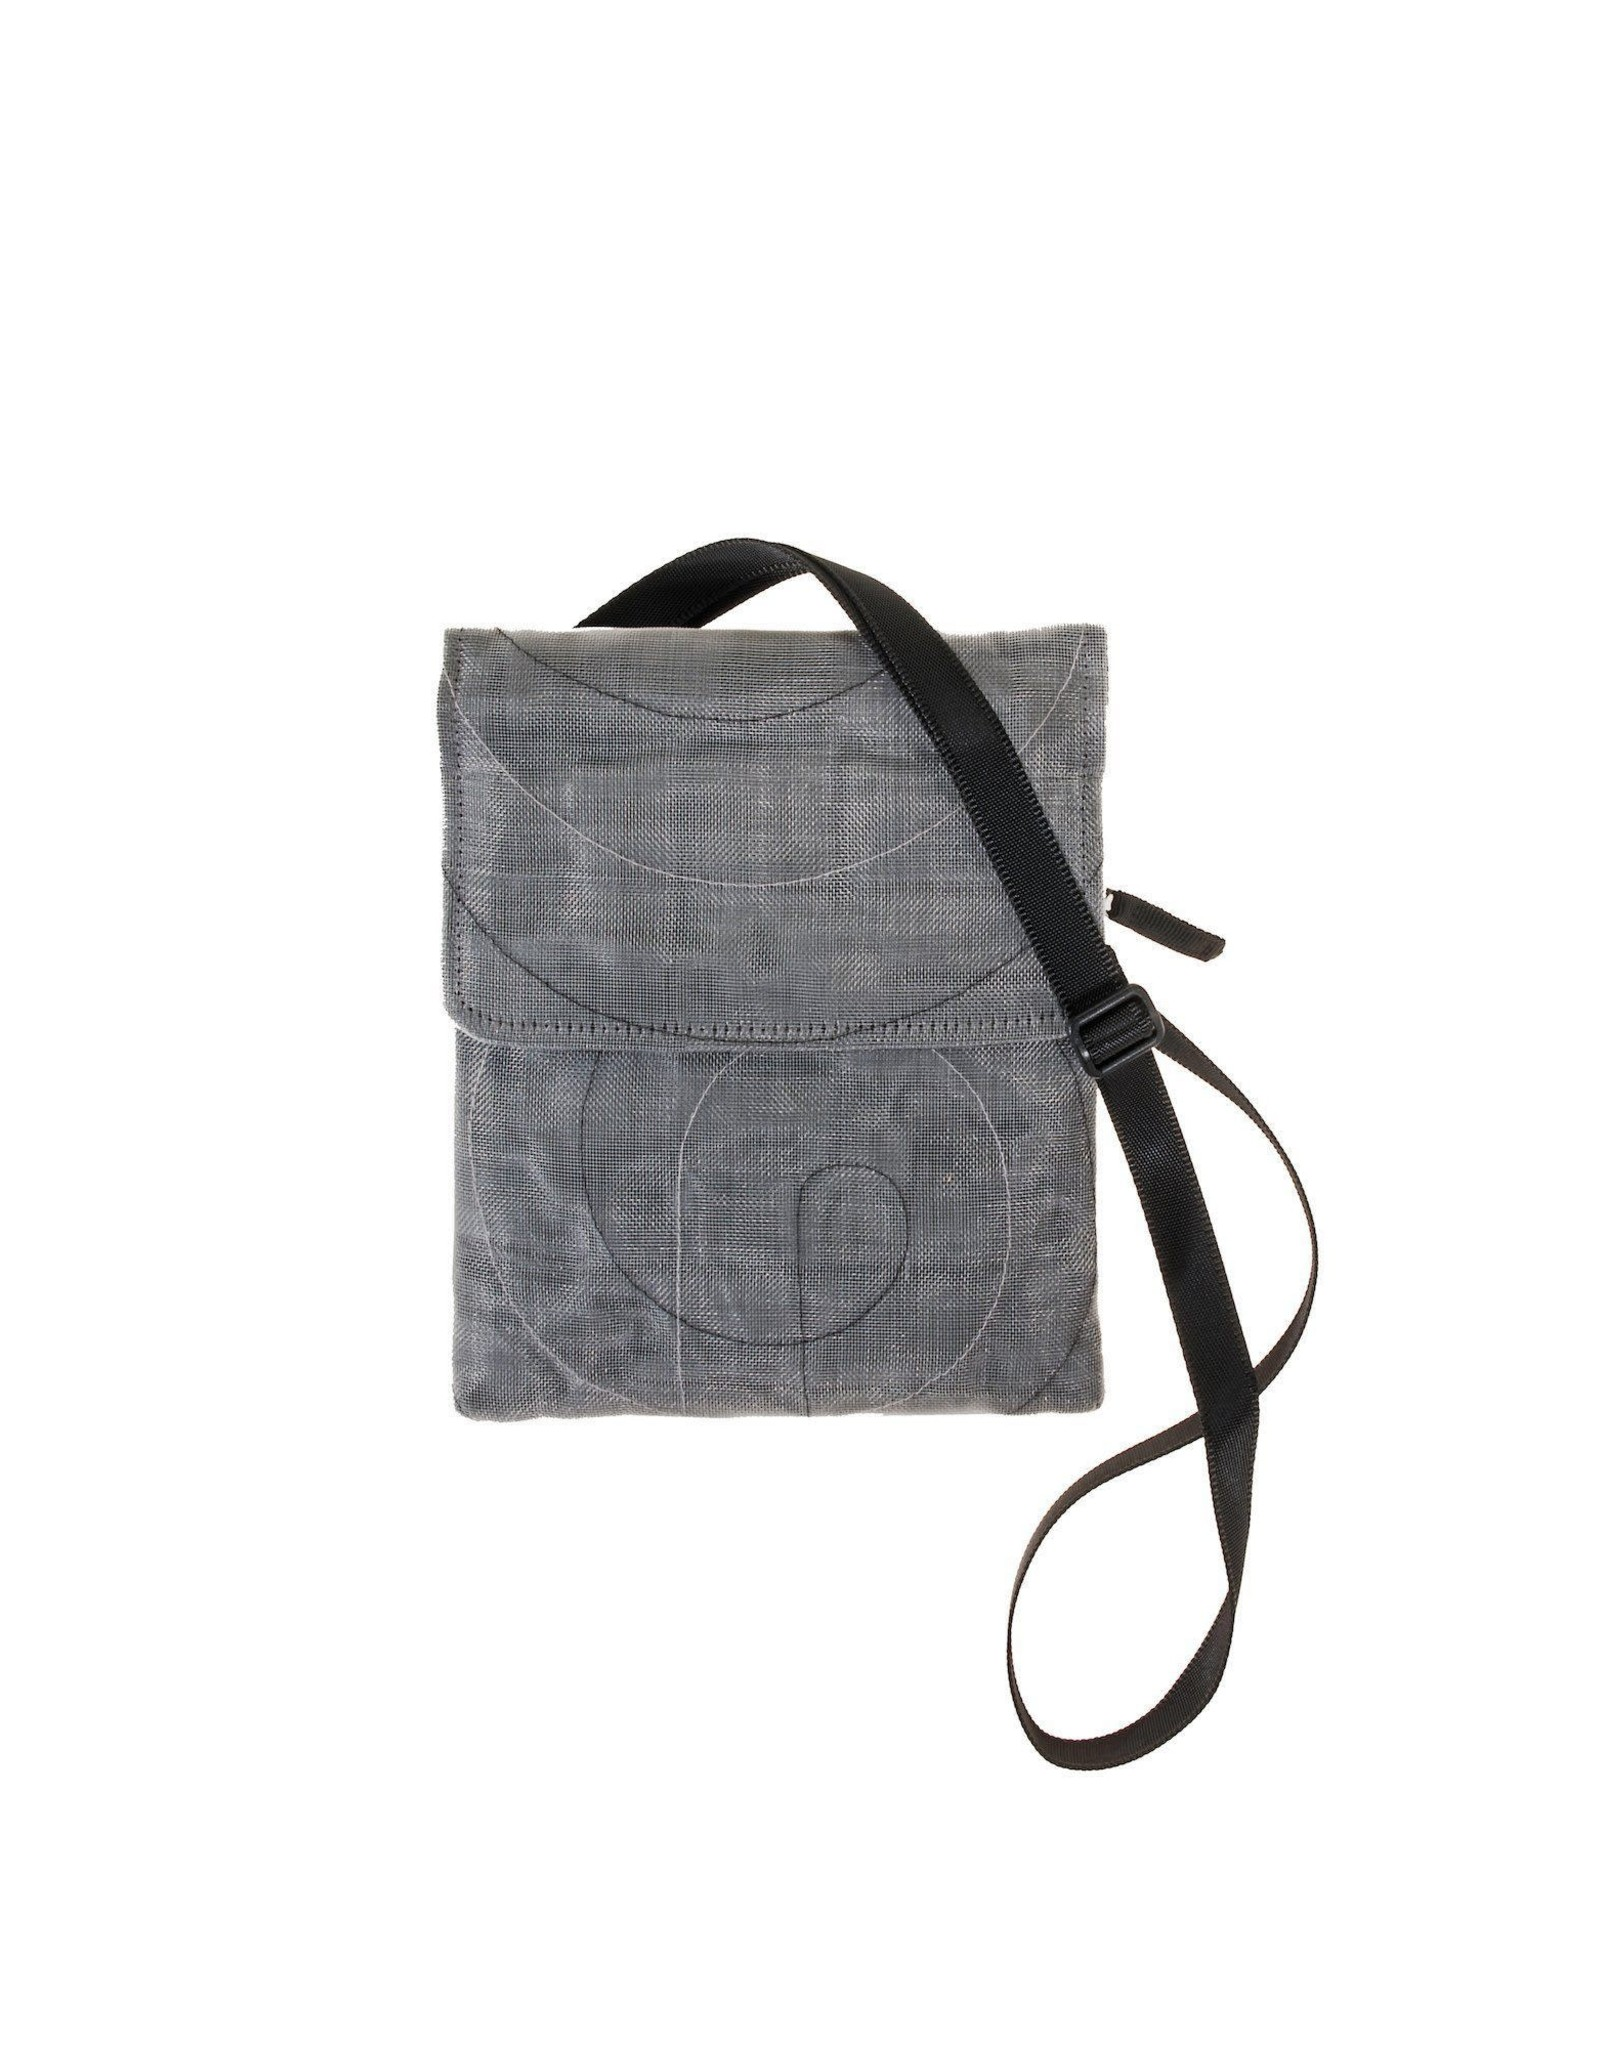 Fish Netting Hip Bag, Charcoal, Cambodia